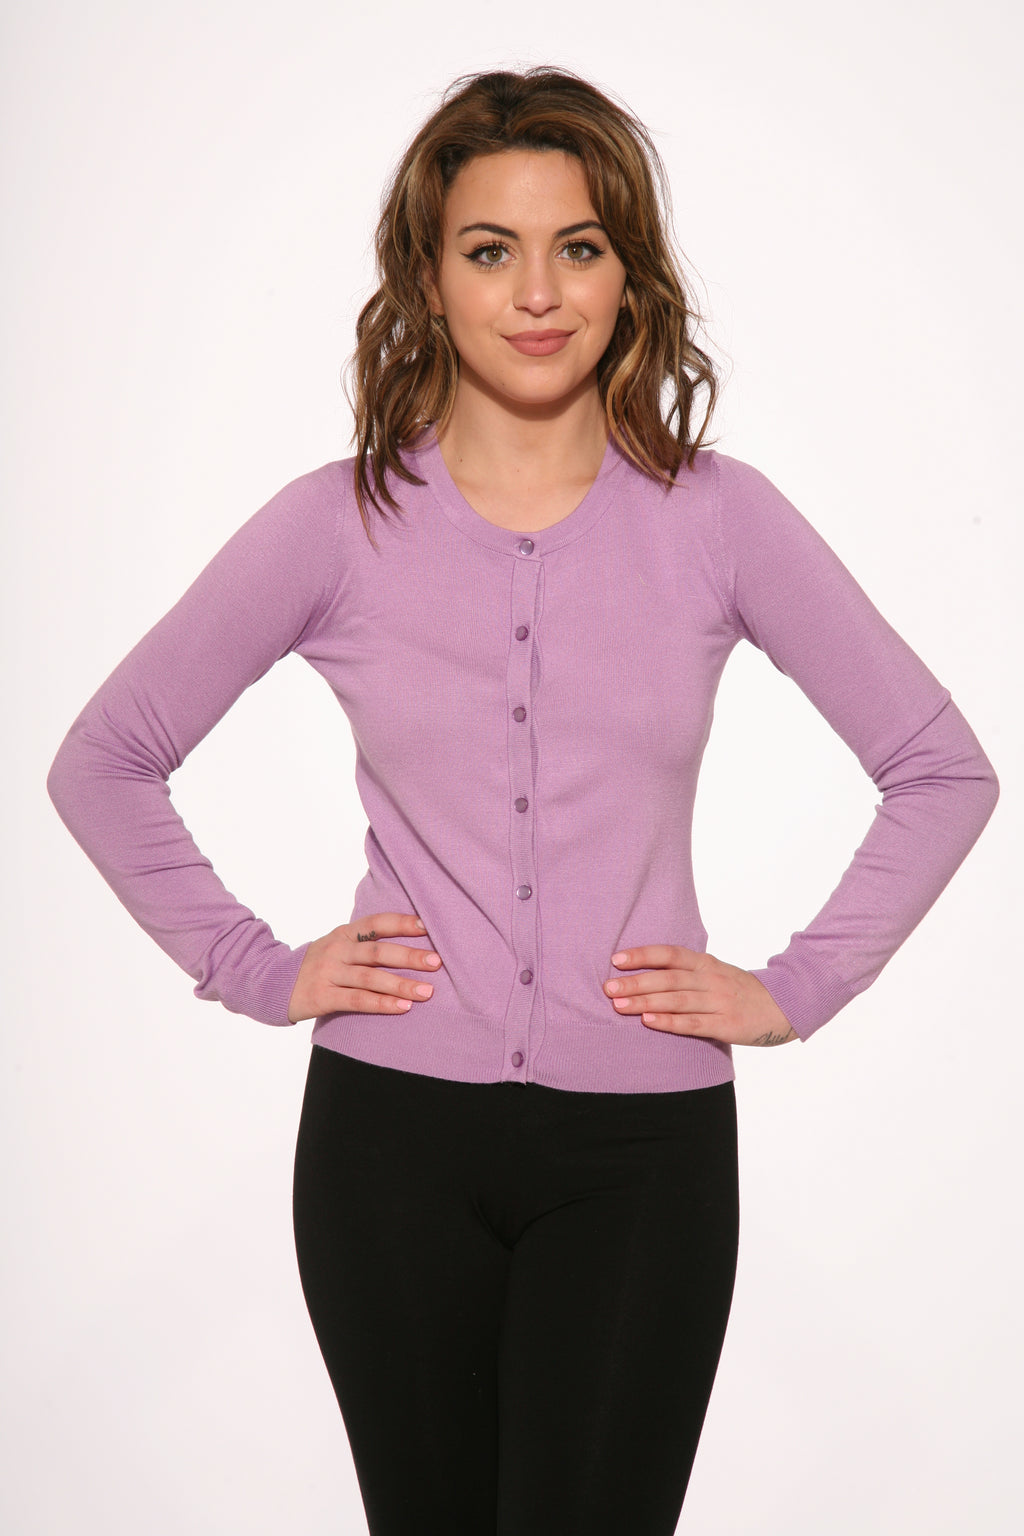 0202 Purple Crew-neck Cardigan